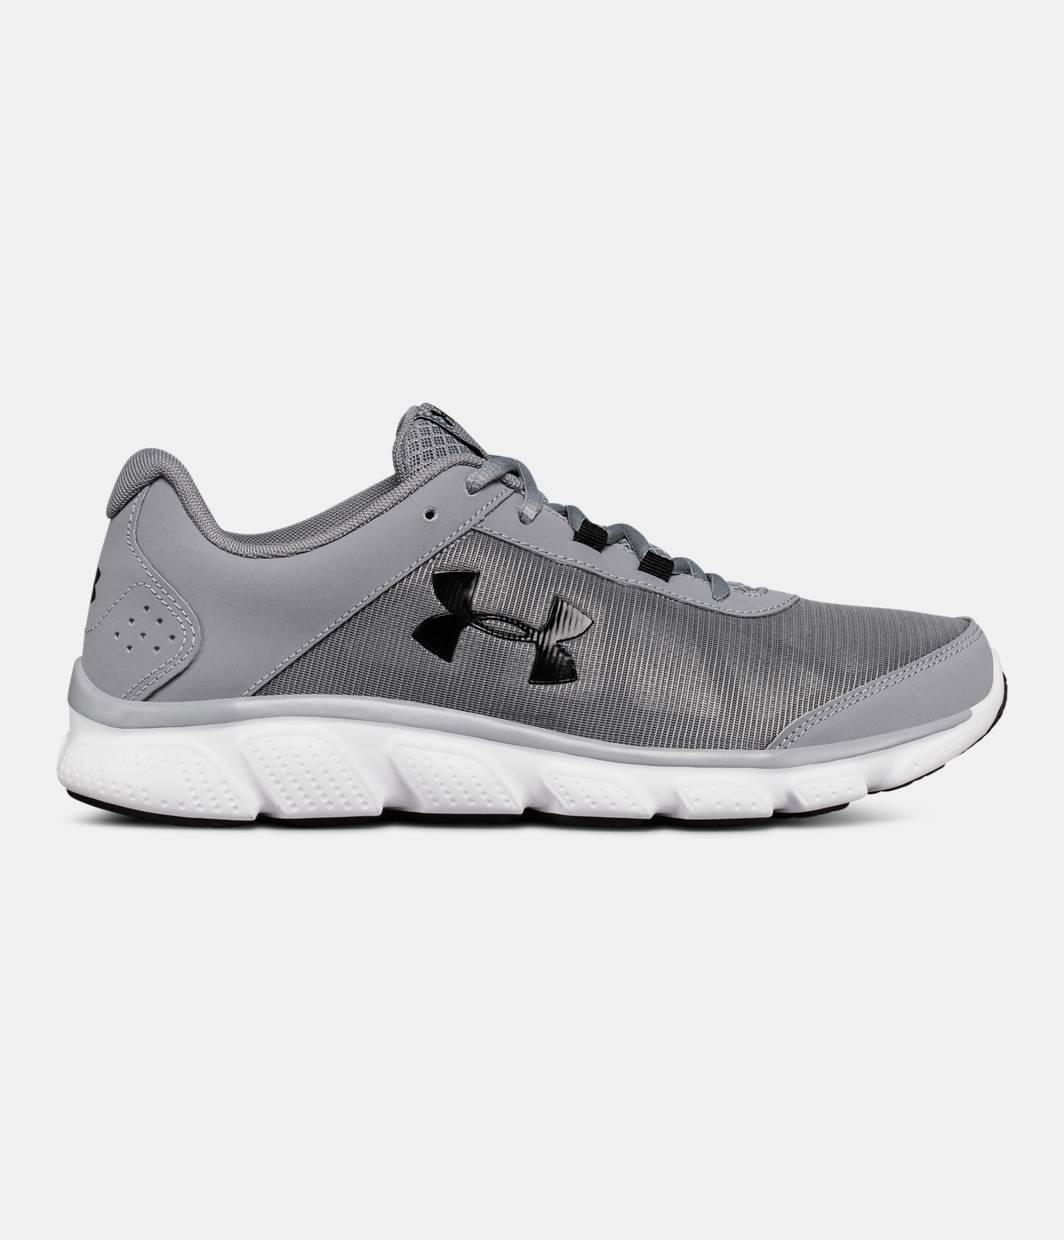 Under Armour Micro G Assert 7 Running Shoe(Men's) -Black/Rhino Gray/Rhino Gray Find Great Cheap Online Outlet Browse 100% Authentic Online Official Site Cheap Price Best Cheap Online KuDuvi